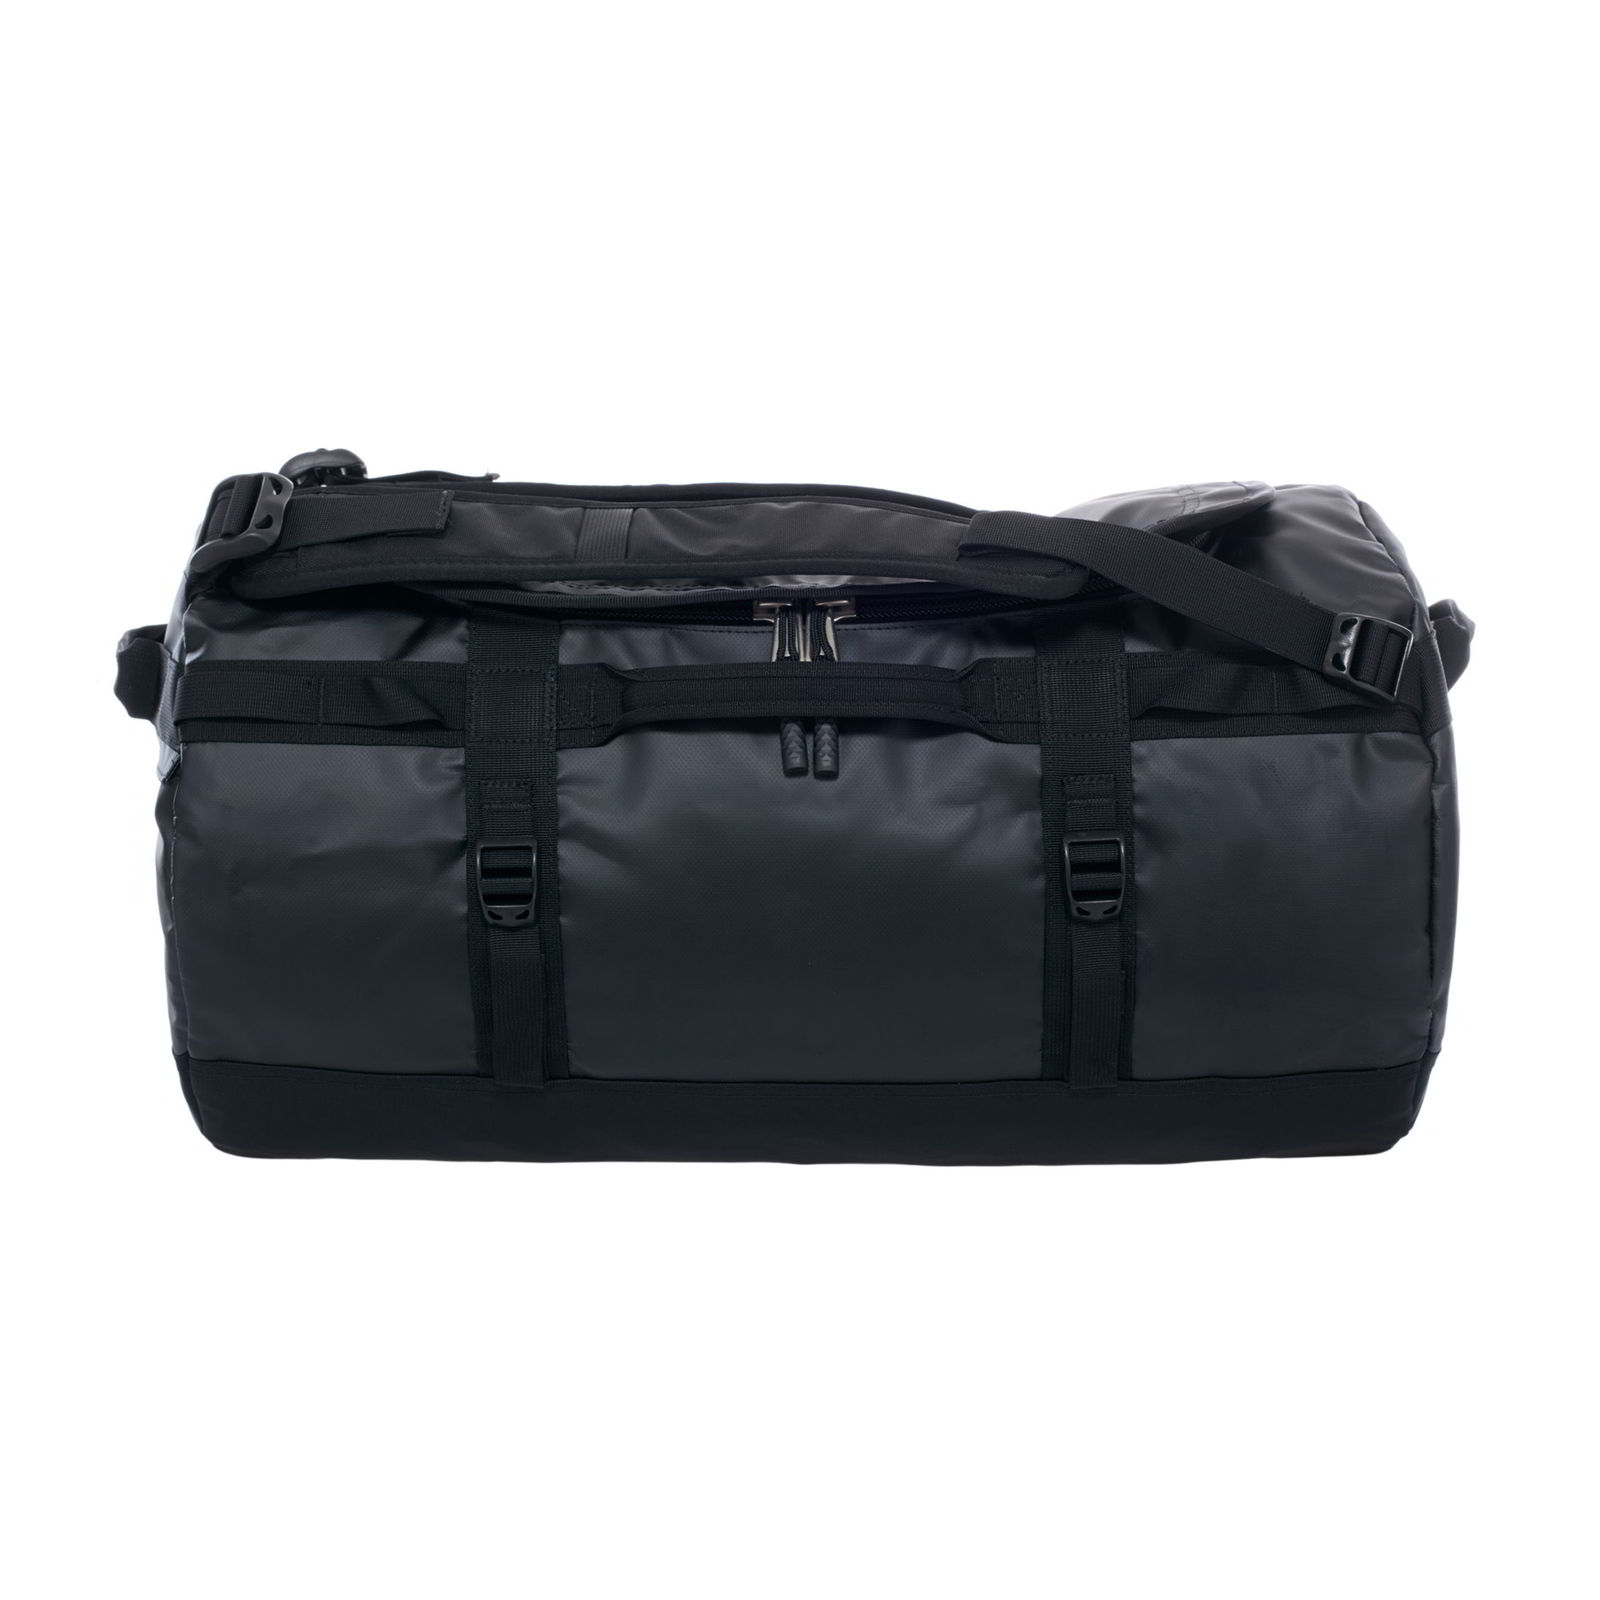 new tnf the north face base camp duffel grey small. Black Bedroom Furniture Sets. Home Design Ideas